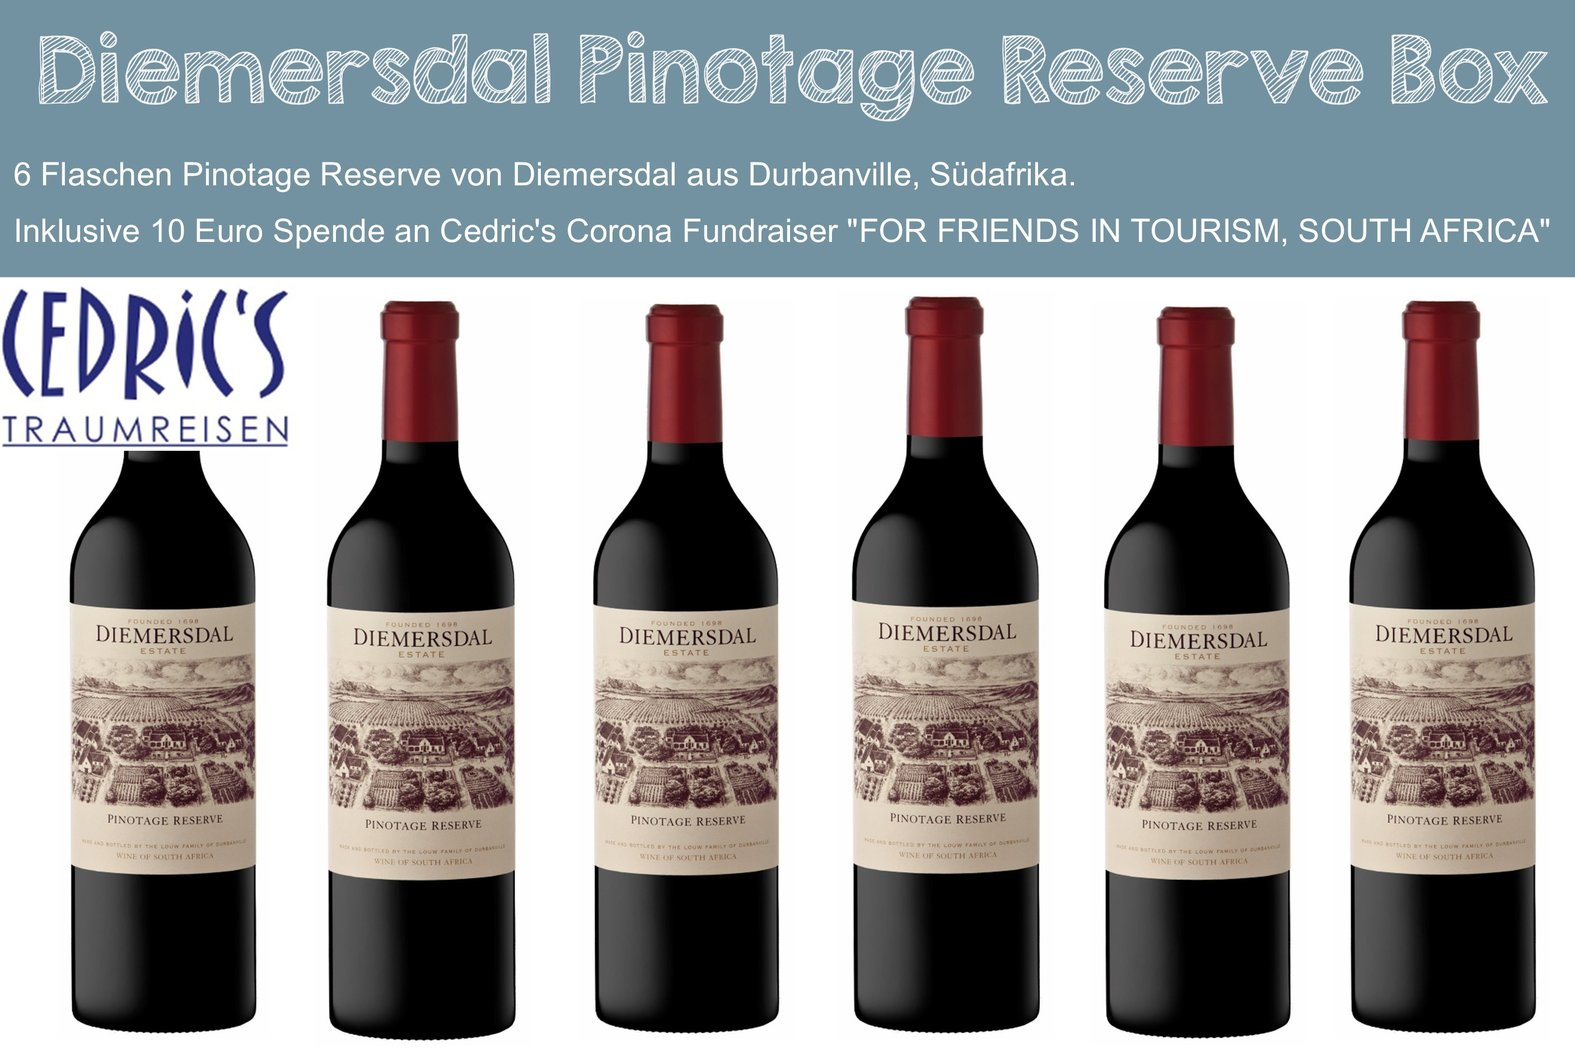 Diemersdal Pinotage Reserve Box